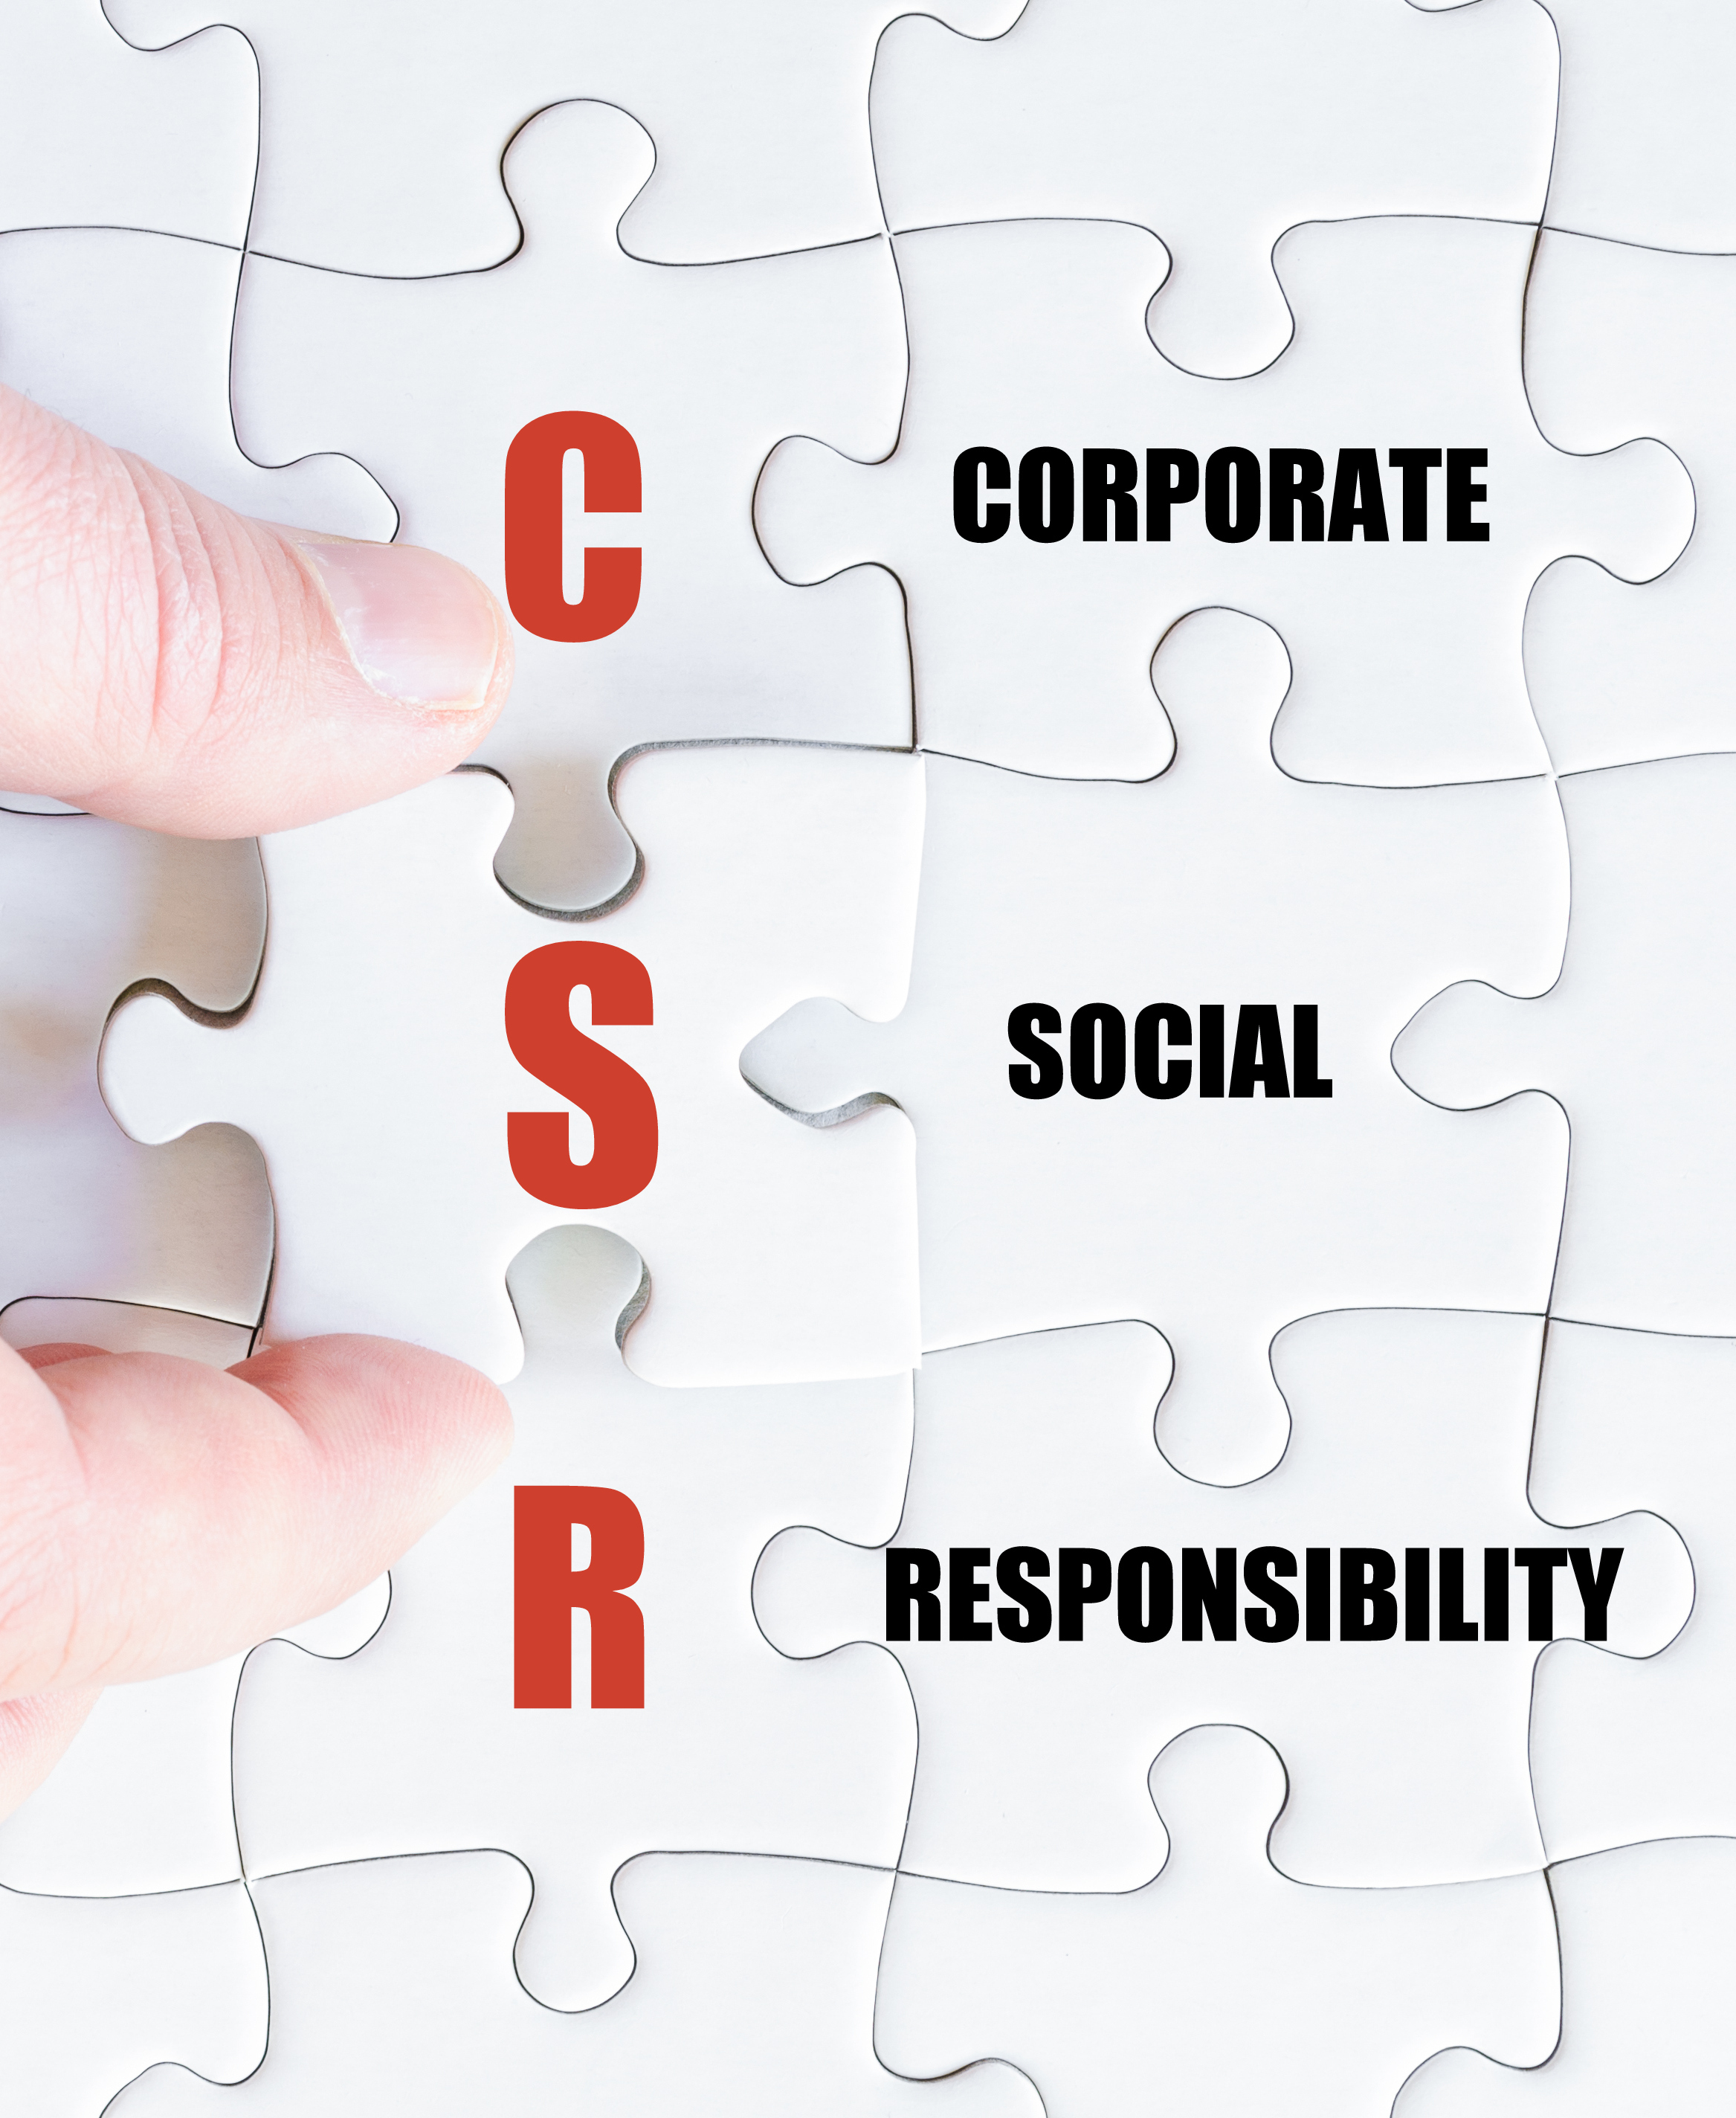 7 Tips for a Successful CSR Program